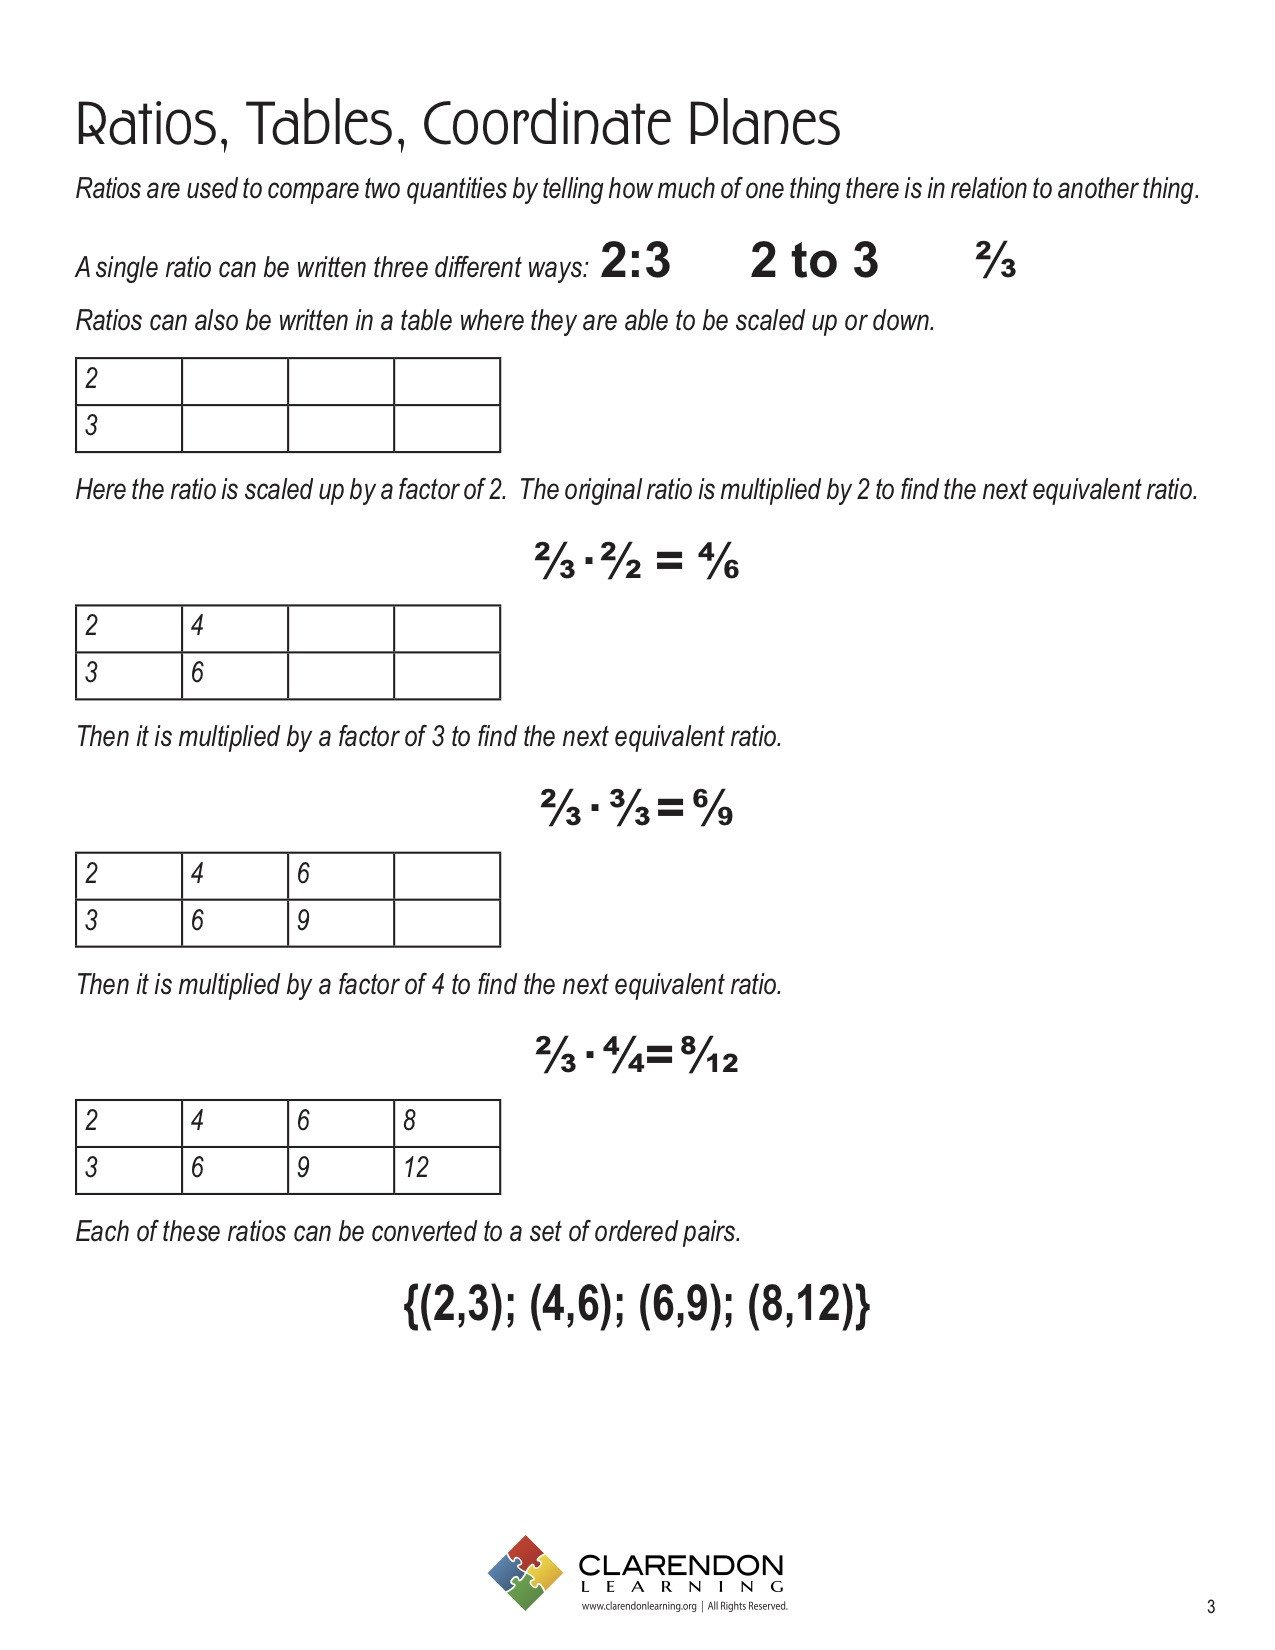 Ratio Table Worksheets 6th Grade Ratios Tables Coordinate Planes Lesson Plan